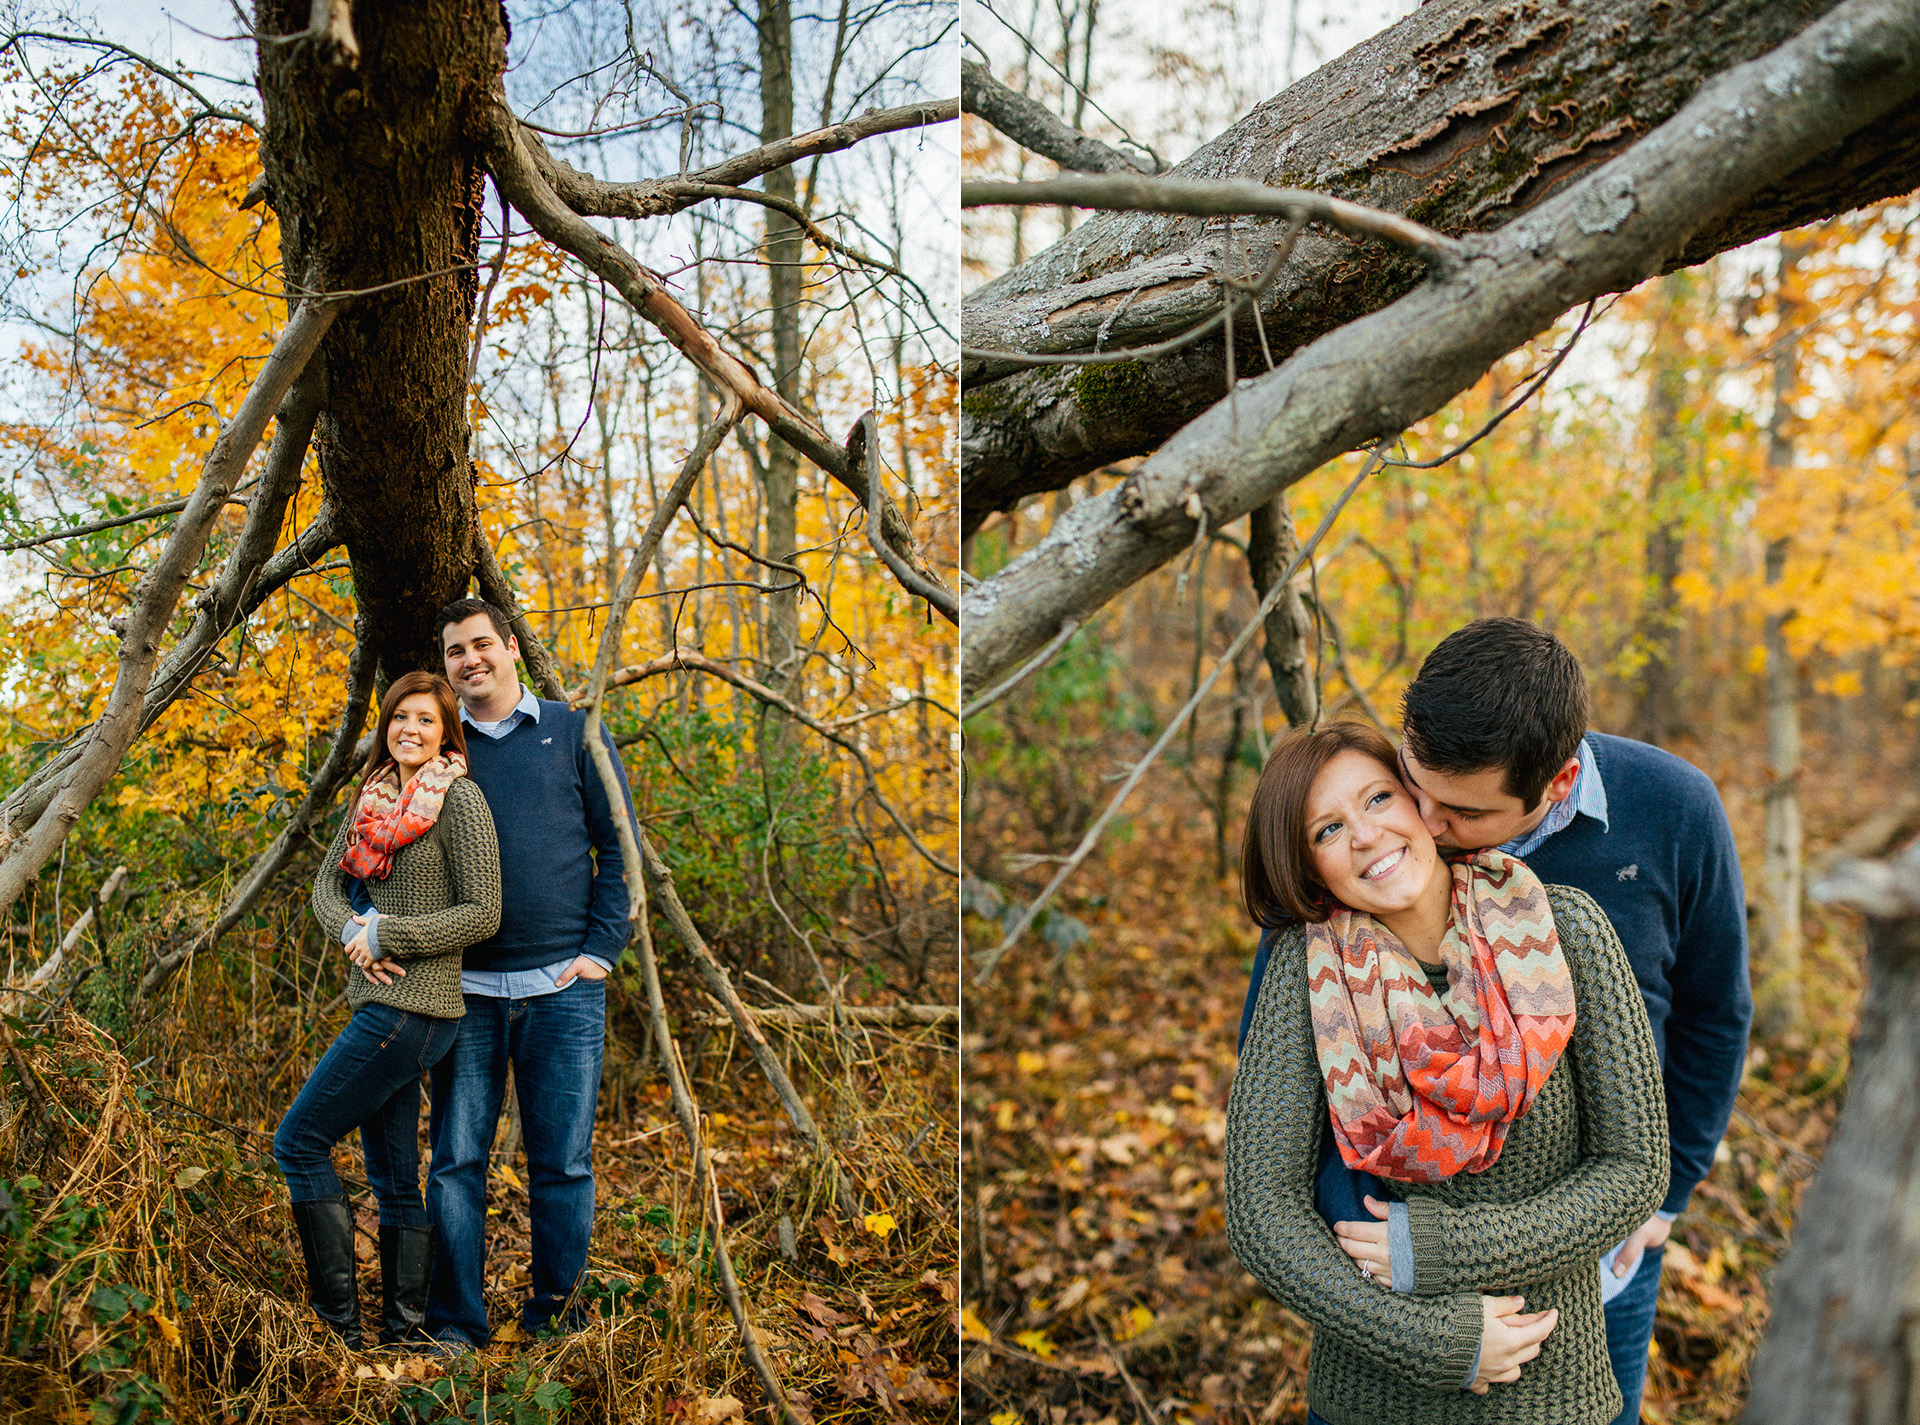 Patterson Fruit Farm Fall Engagement Session Photos in Cleveland 09.jpg